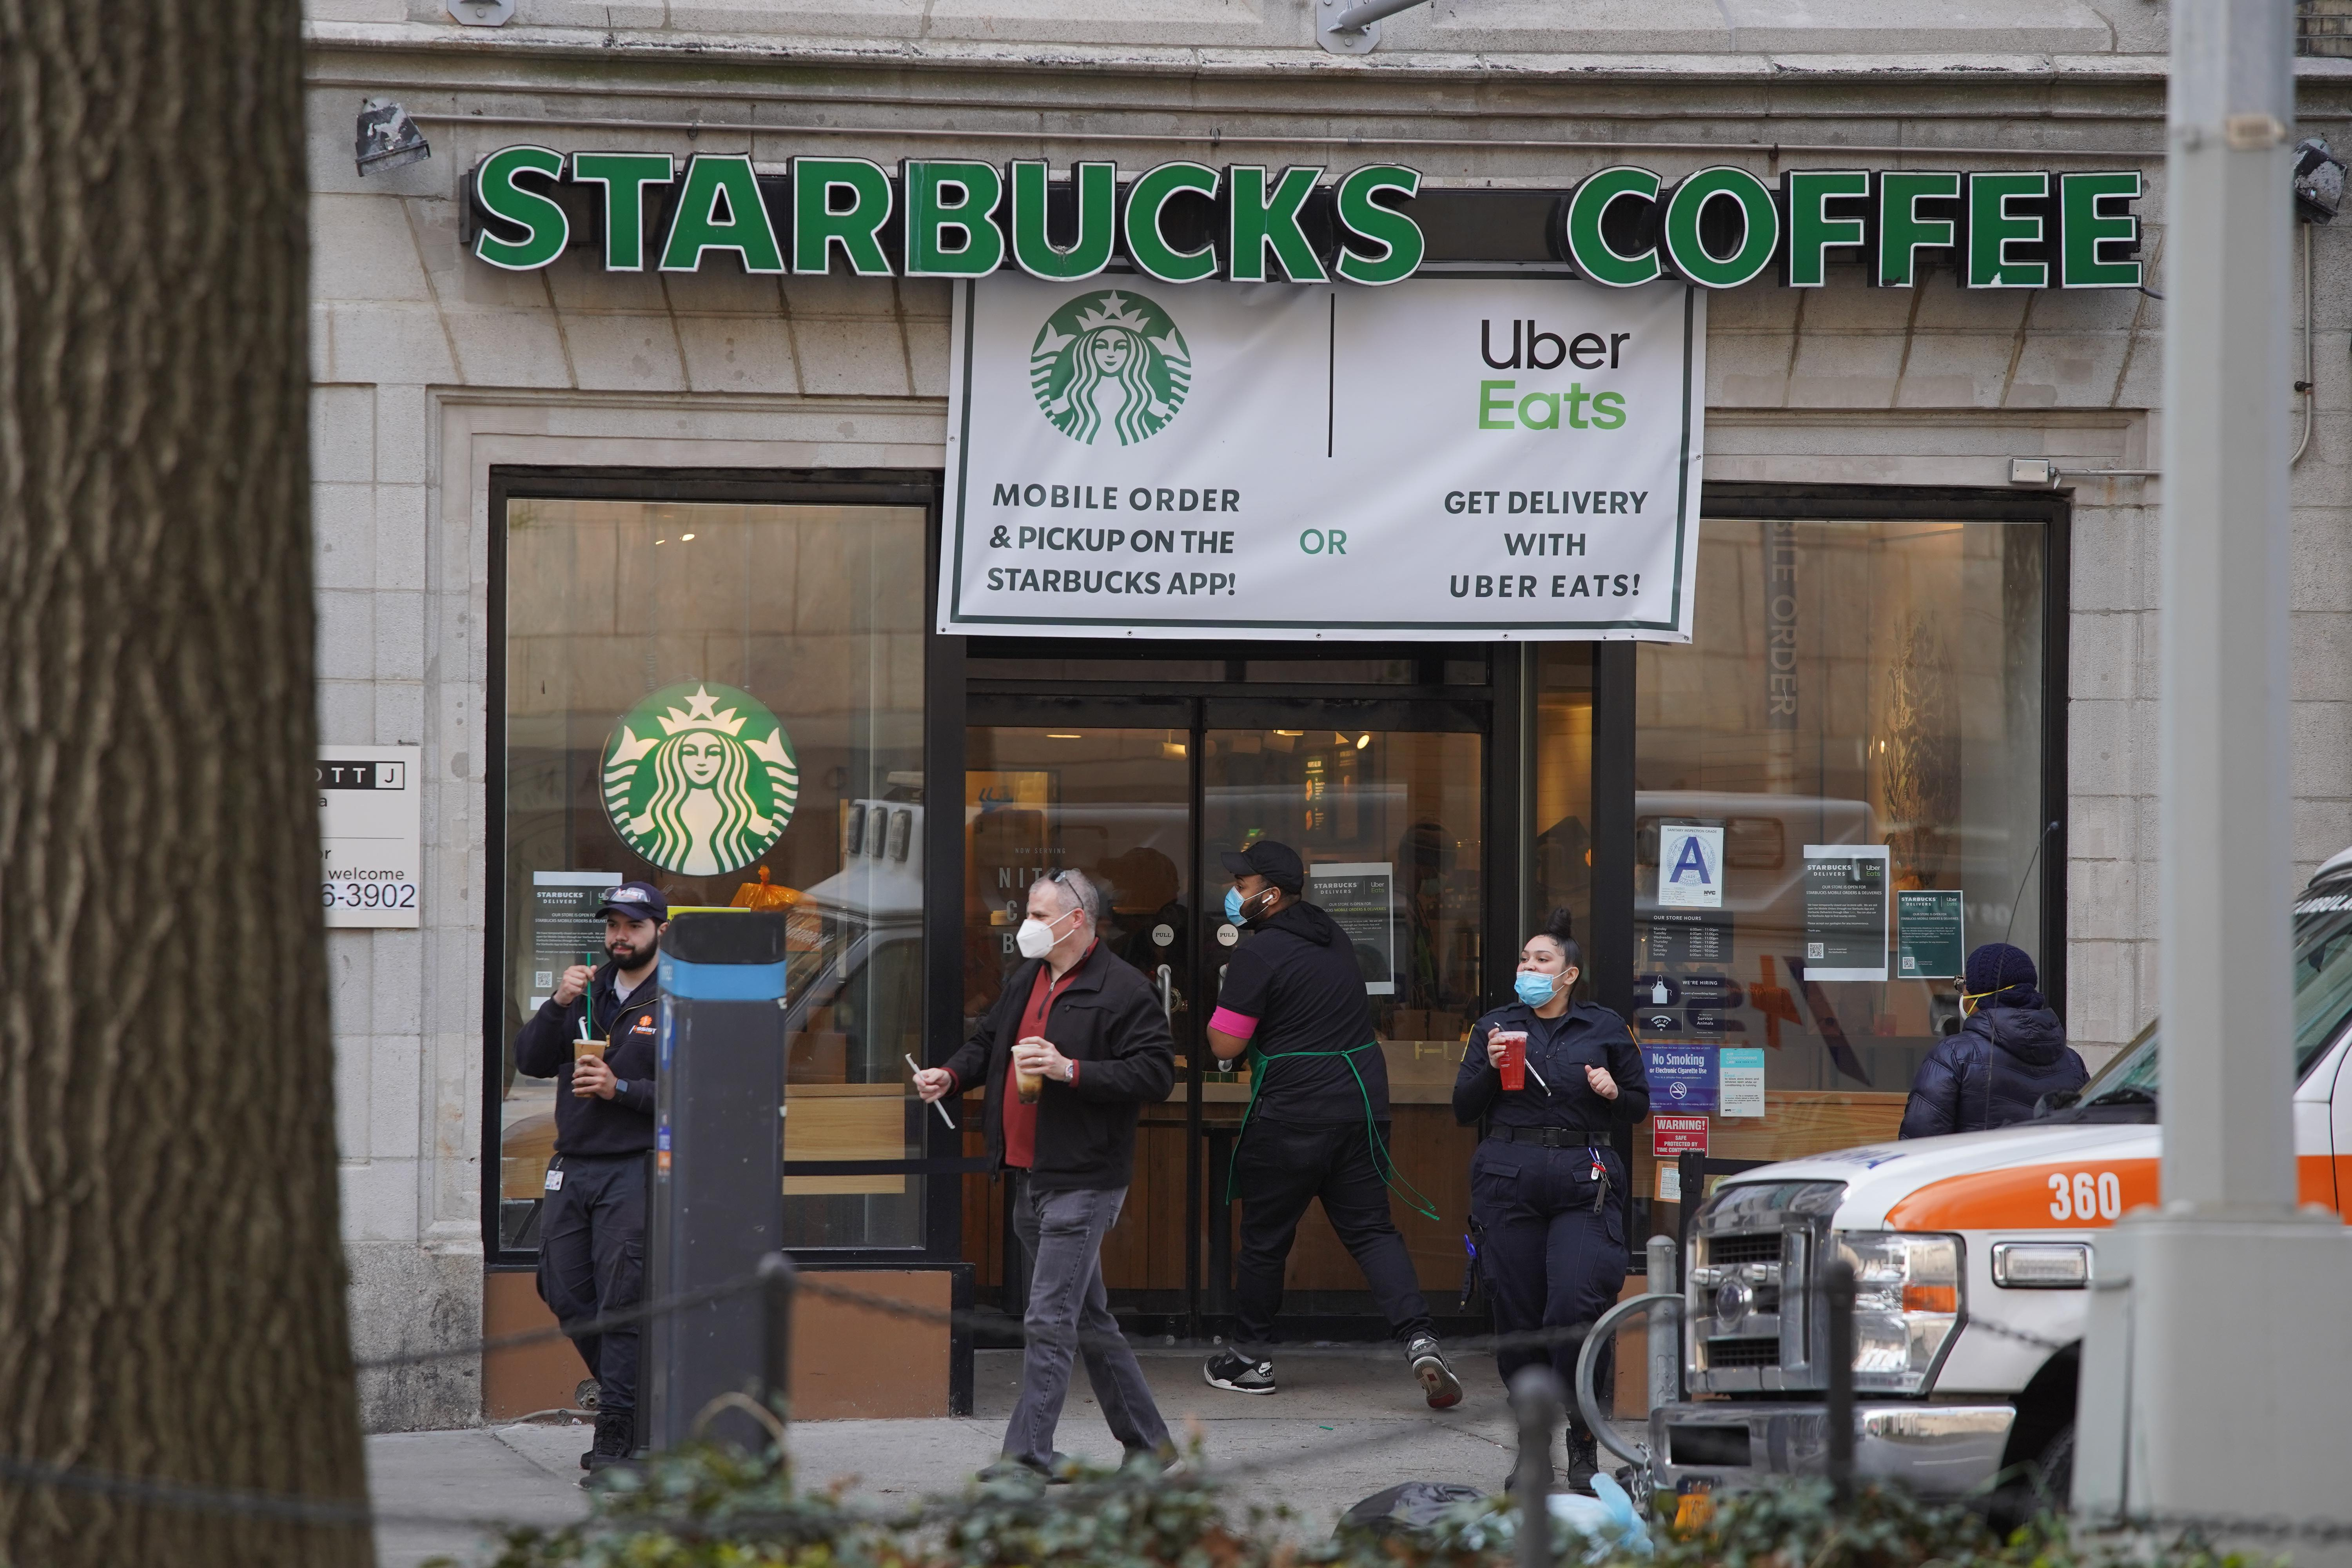 Starbucks same store sales drop 10% as coronavirus forced closures in US, China